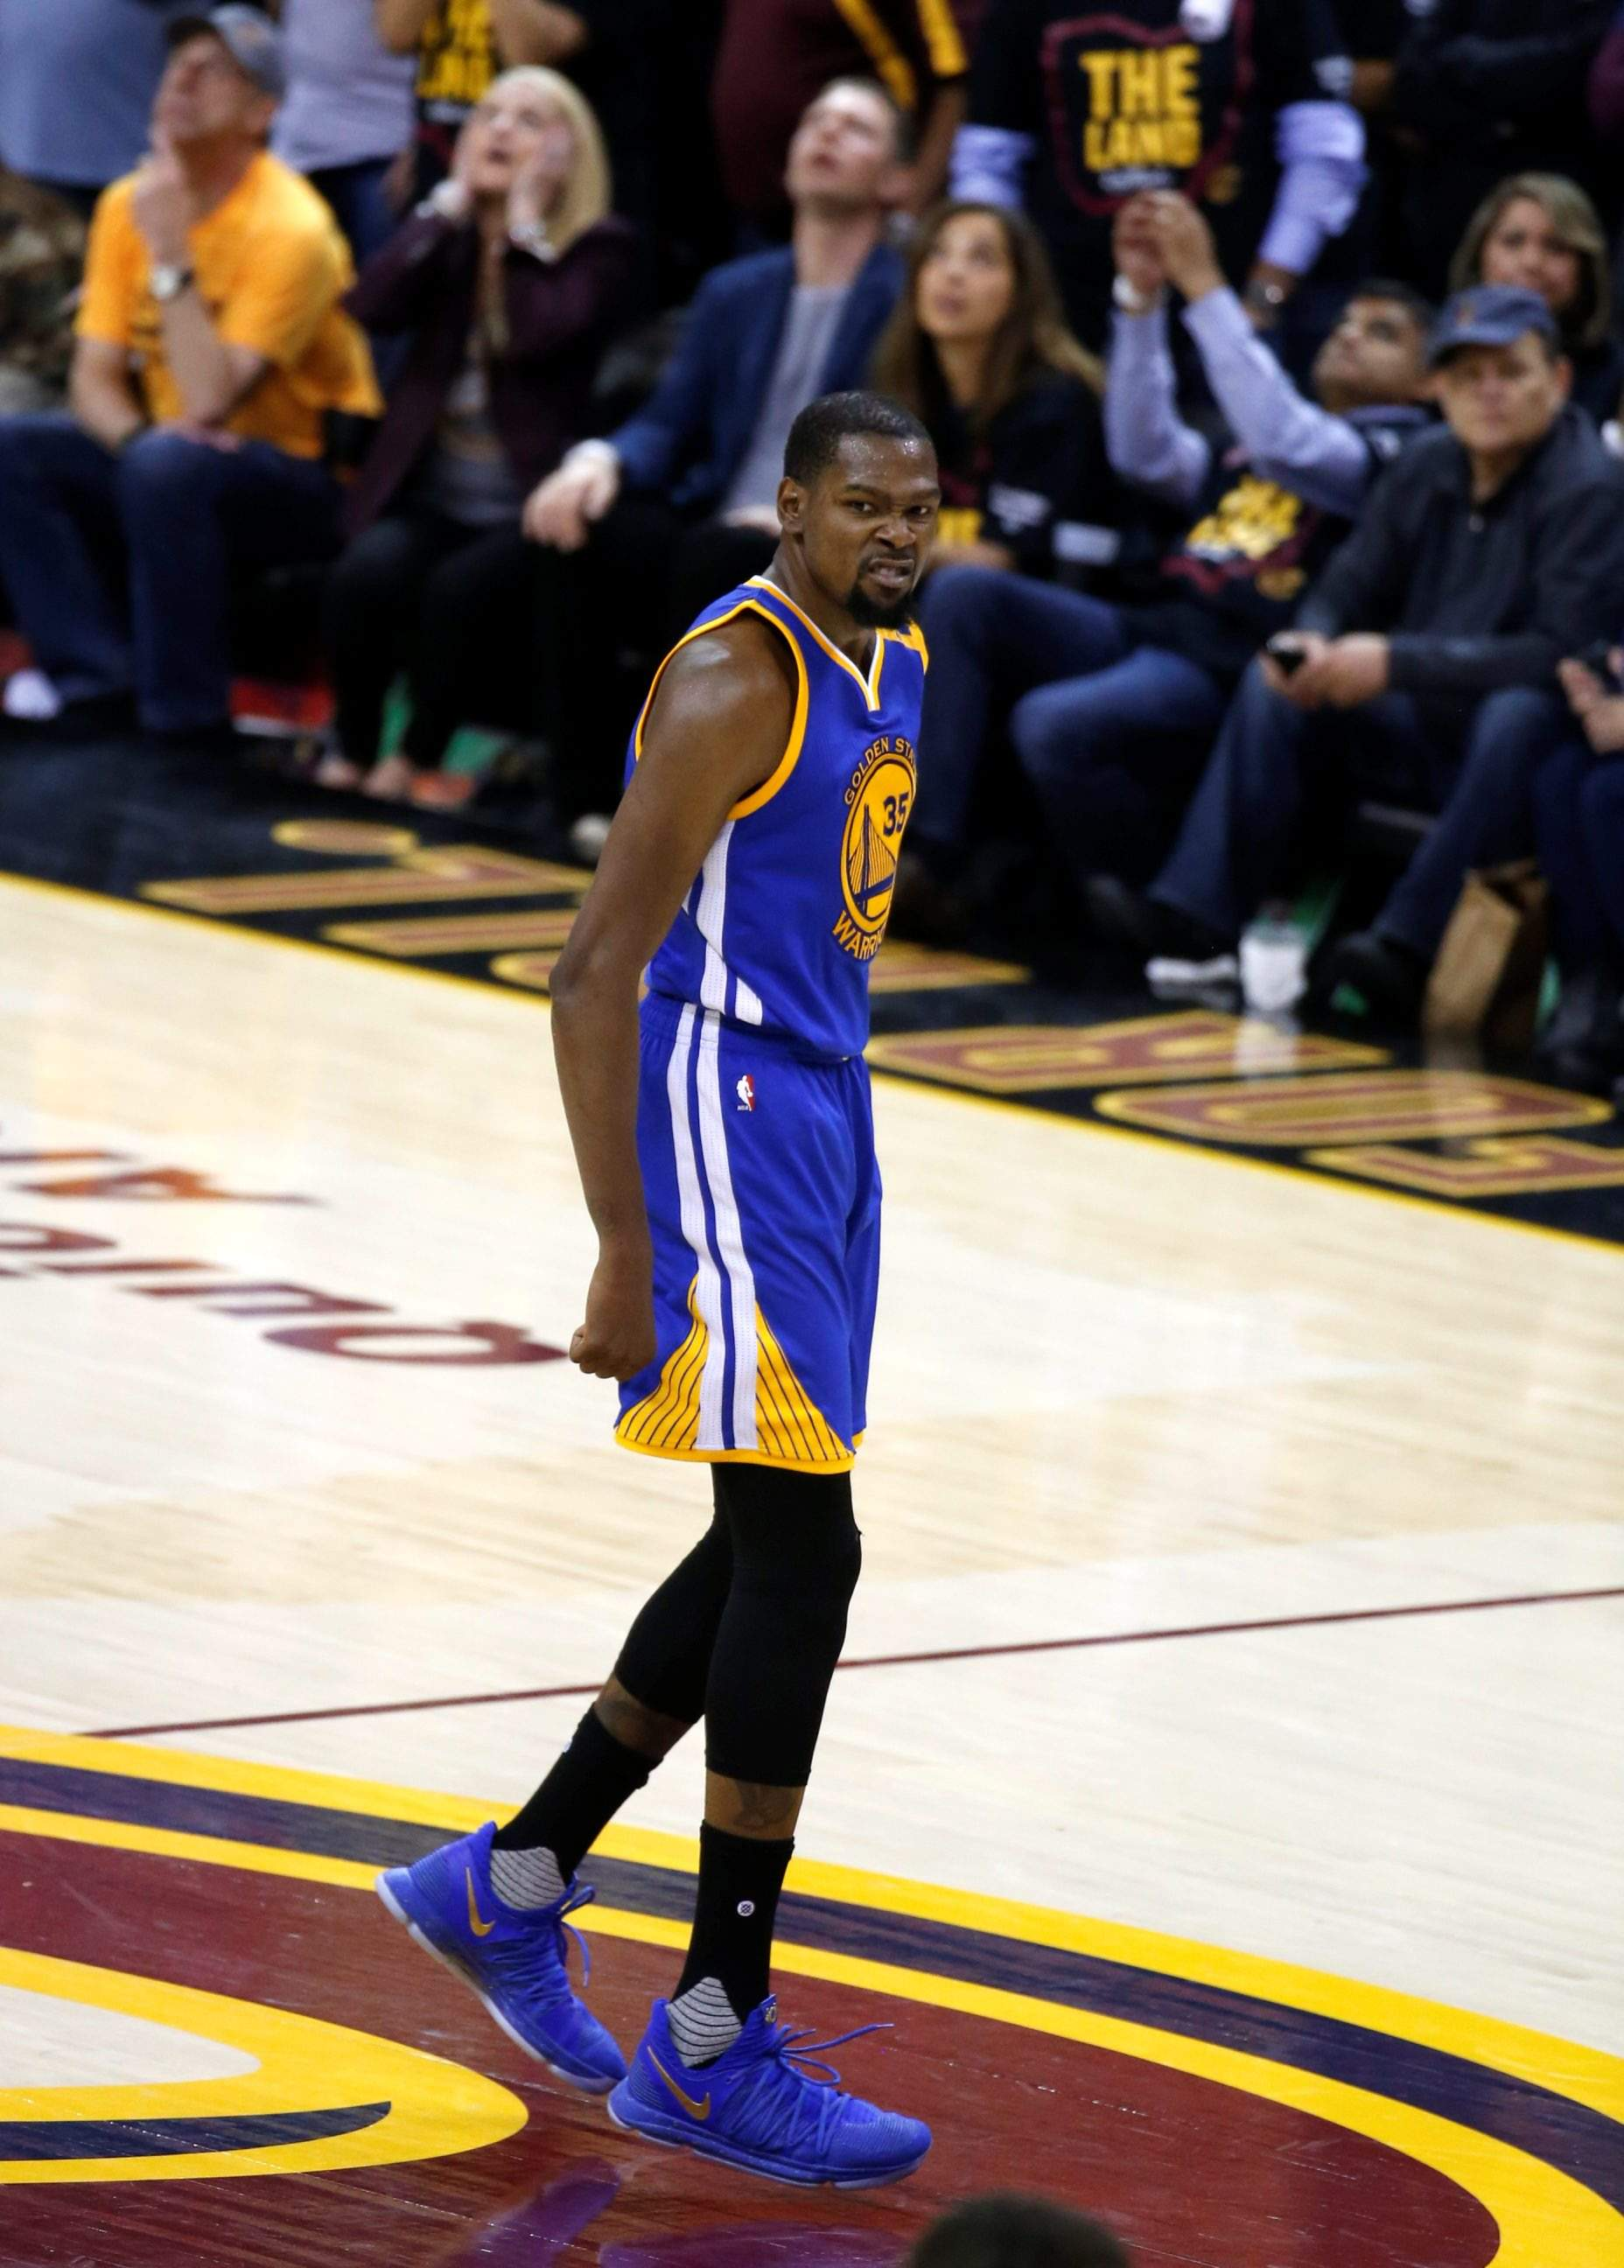 fadf3d0cc922 Golden State Warriors forward Kevin Durant (35) celebrates after hitting  the go-ahead basket in Game 3 of the NBA Finals in Cleveland.